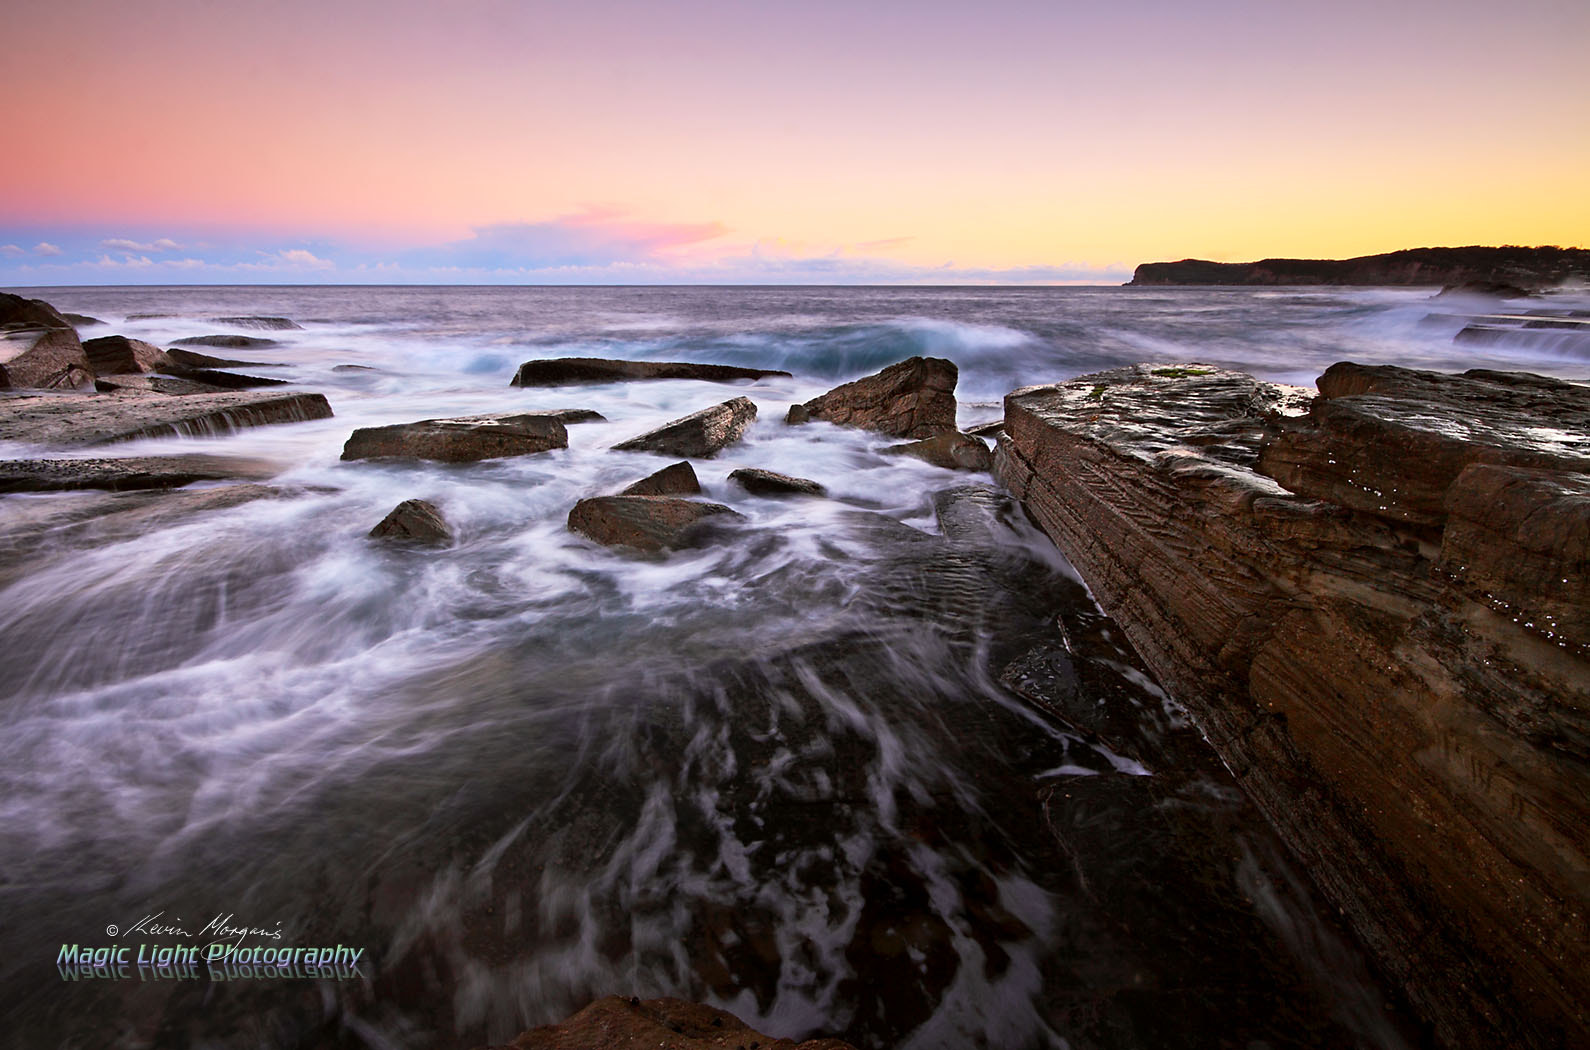 Photograph Skillion Rocks Sunset #3 by Kevin Morgan on 500px